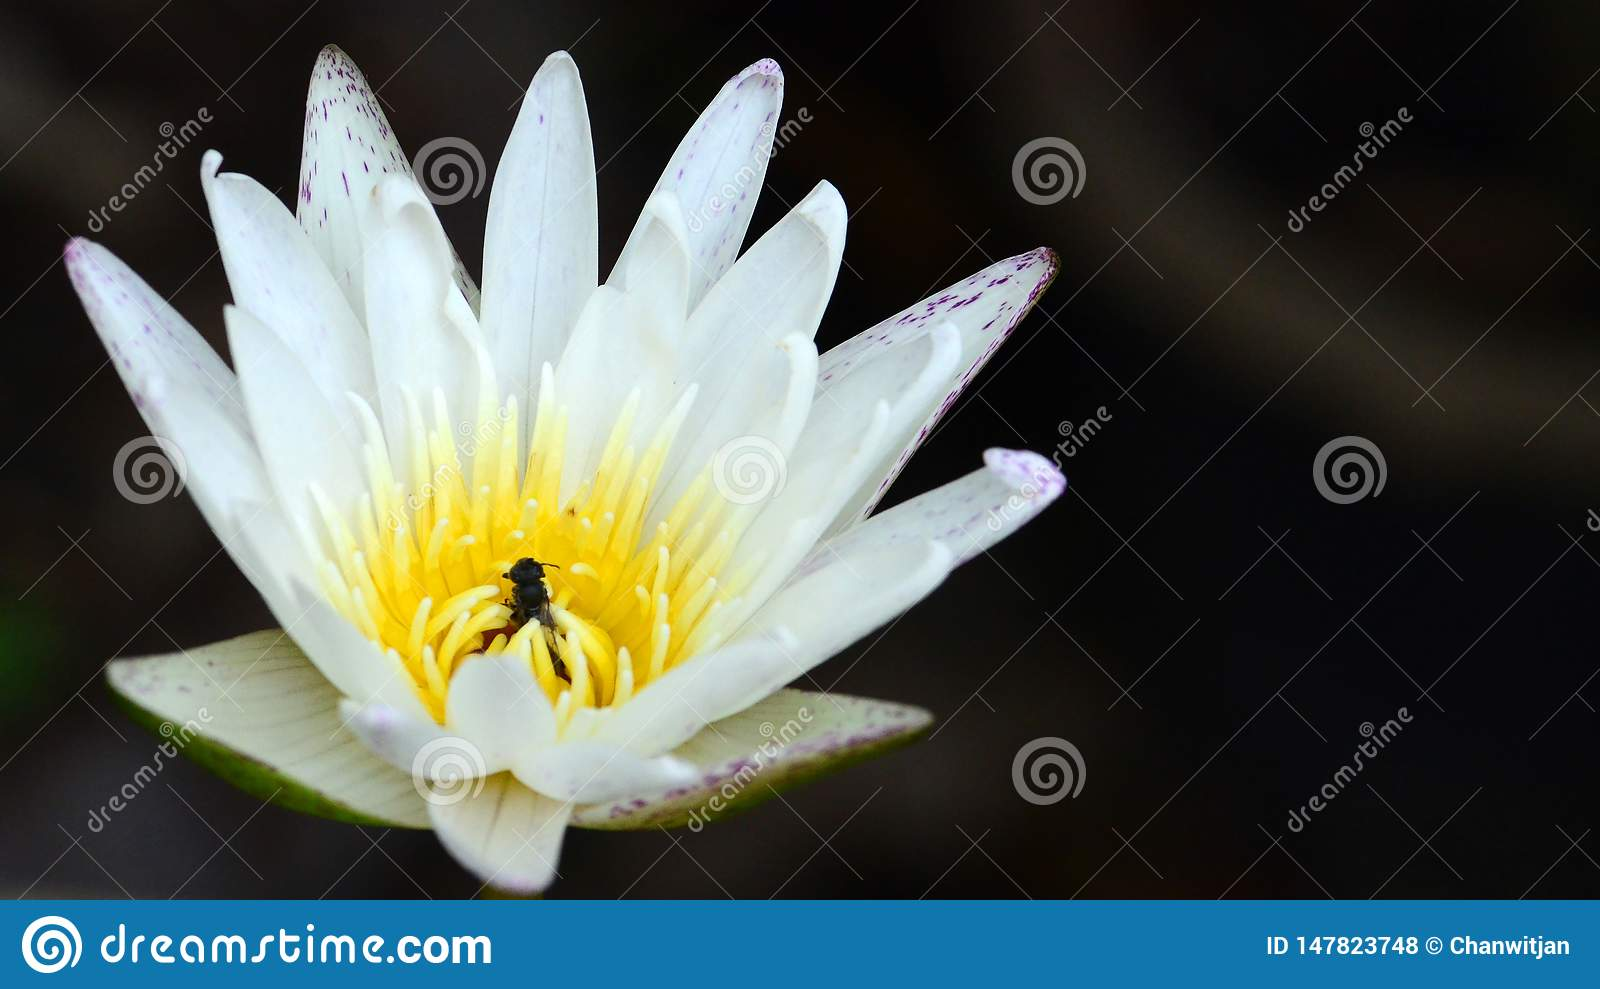 White lotus waterlily with bee hiding inside